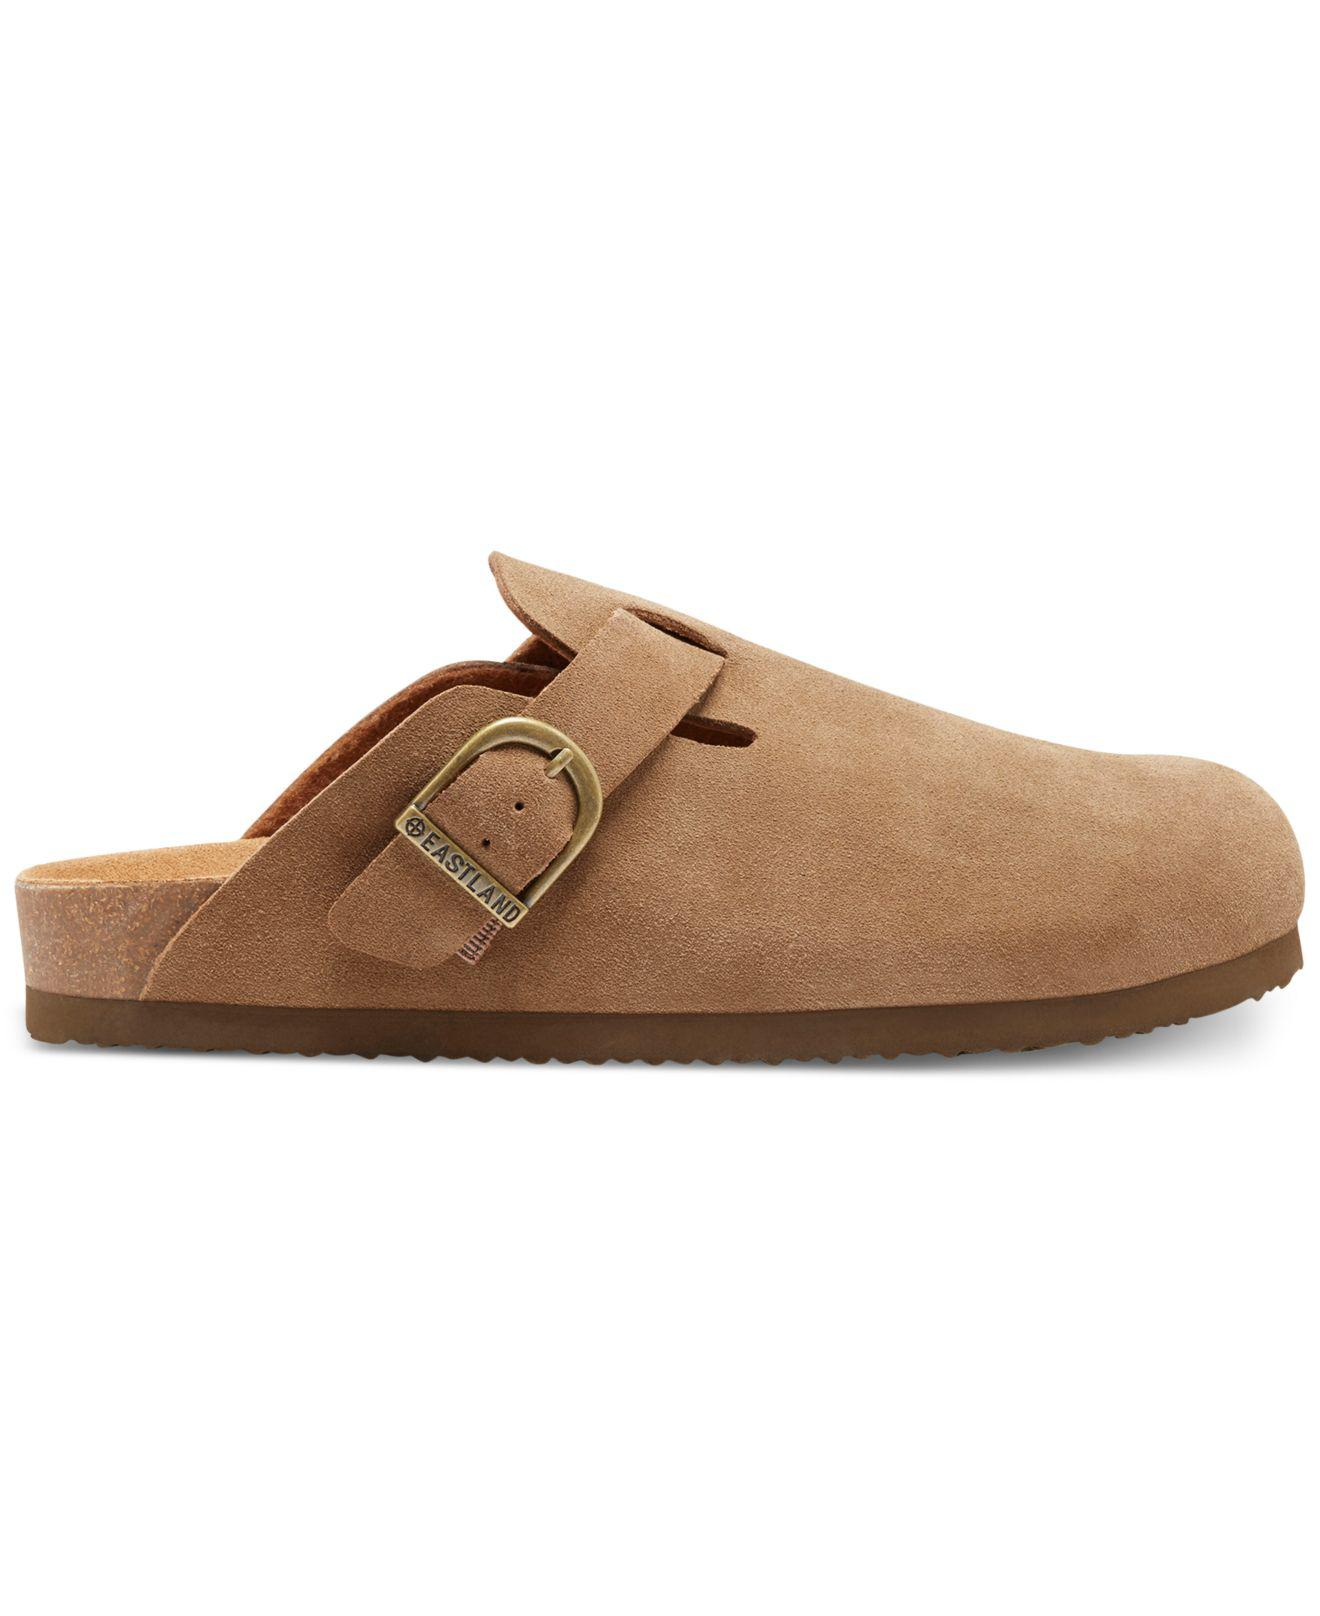 Eastland Gino Leather Clogs for Men - Lyst